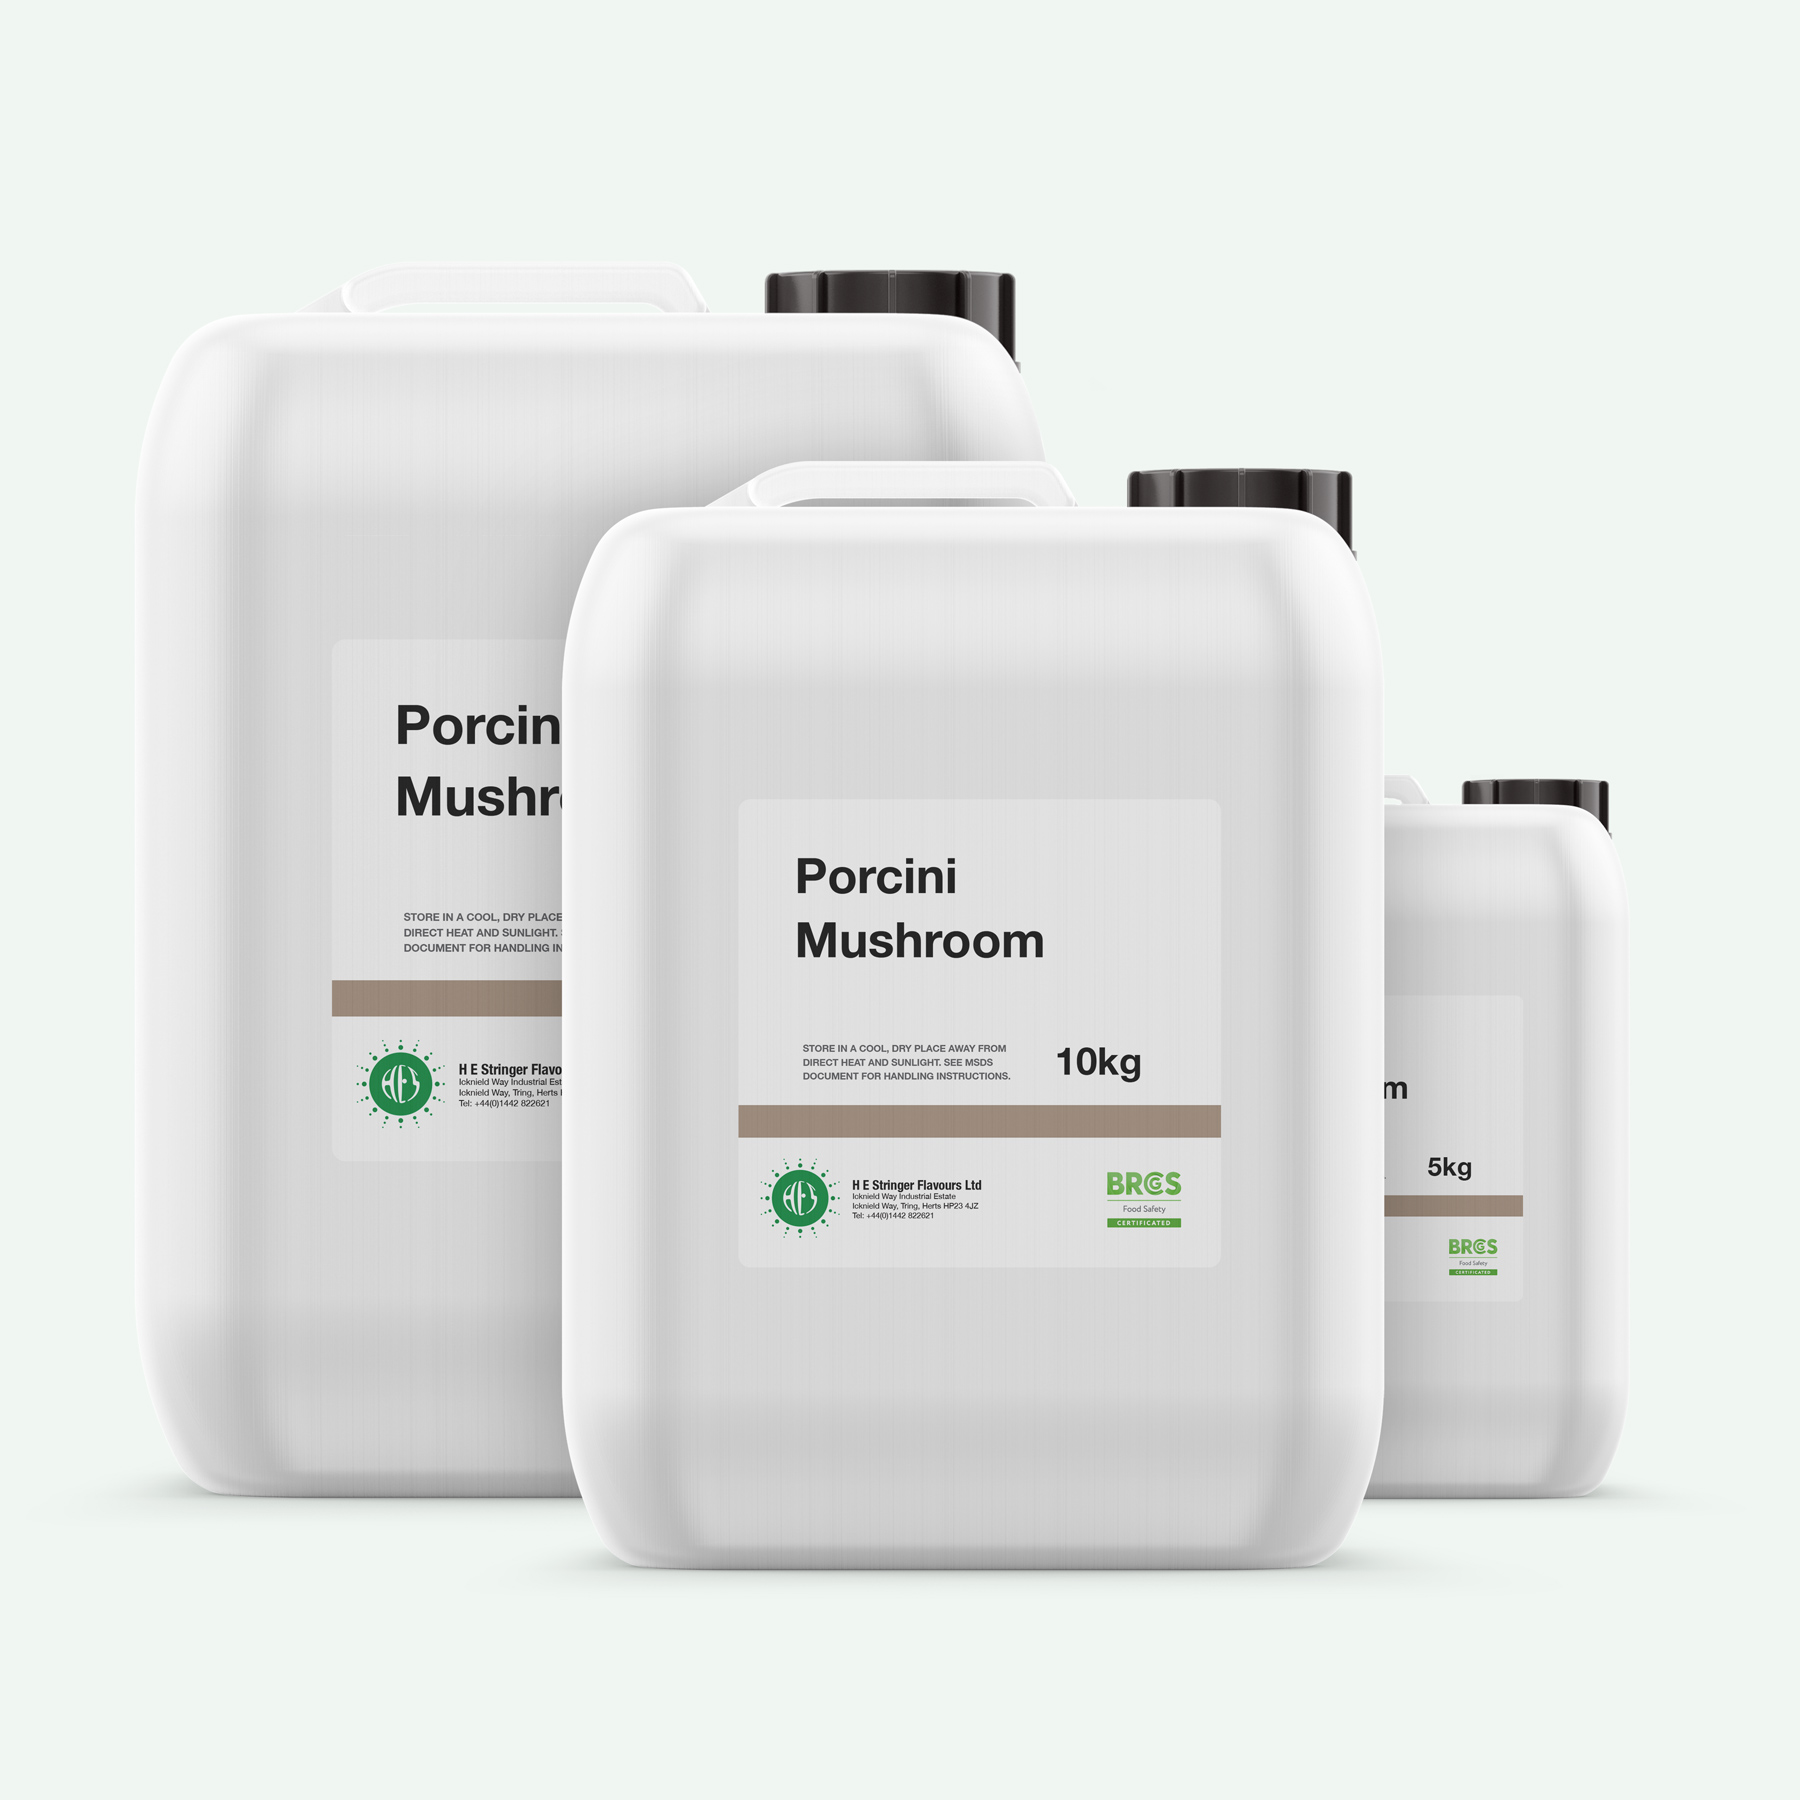 three jerrycans of porcini mushroom flavouring